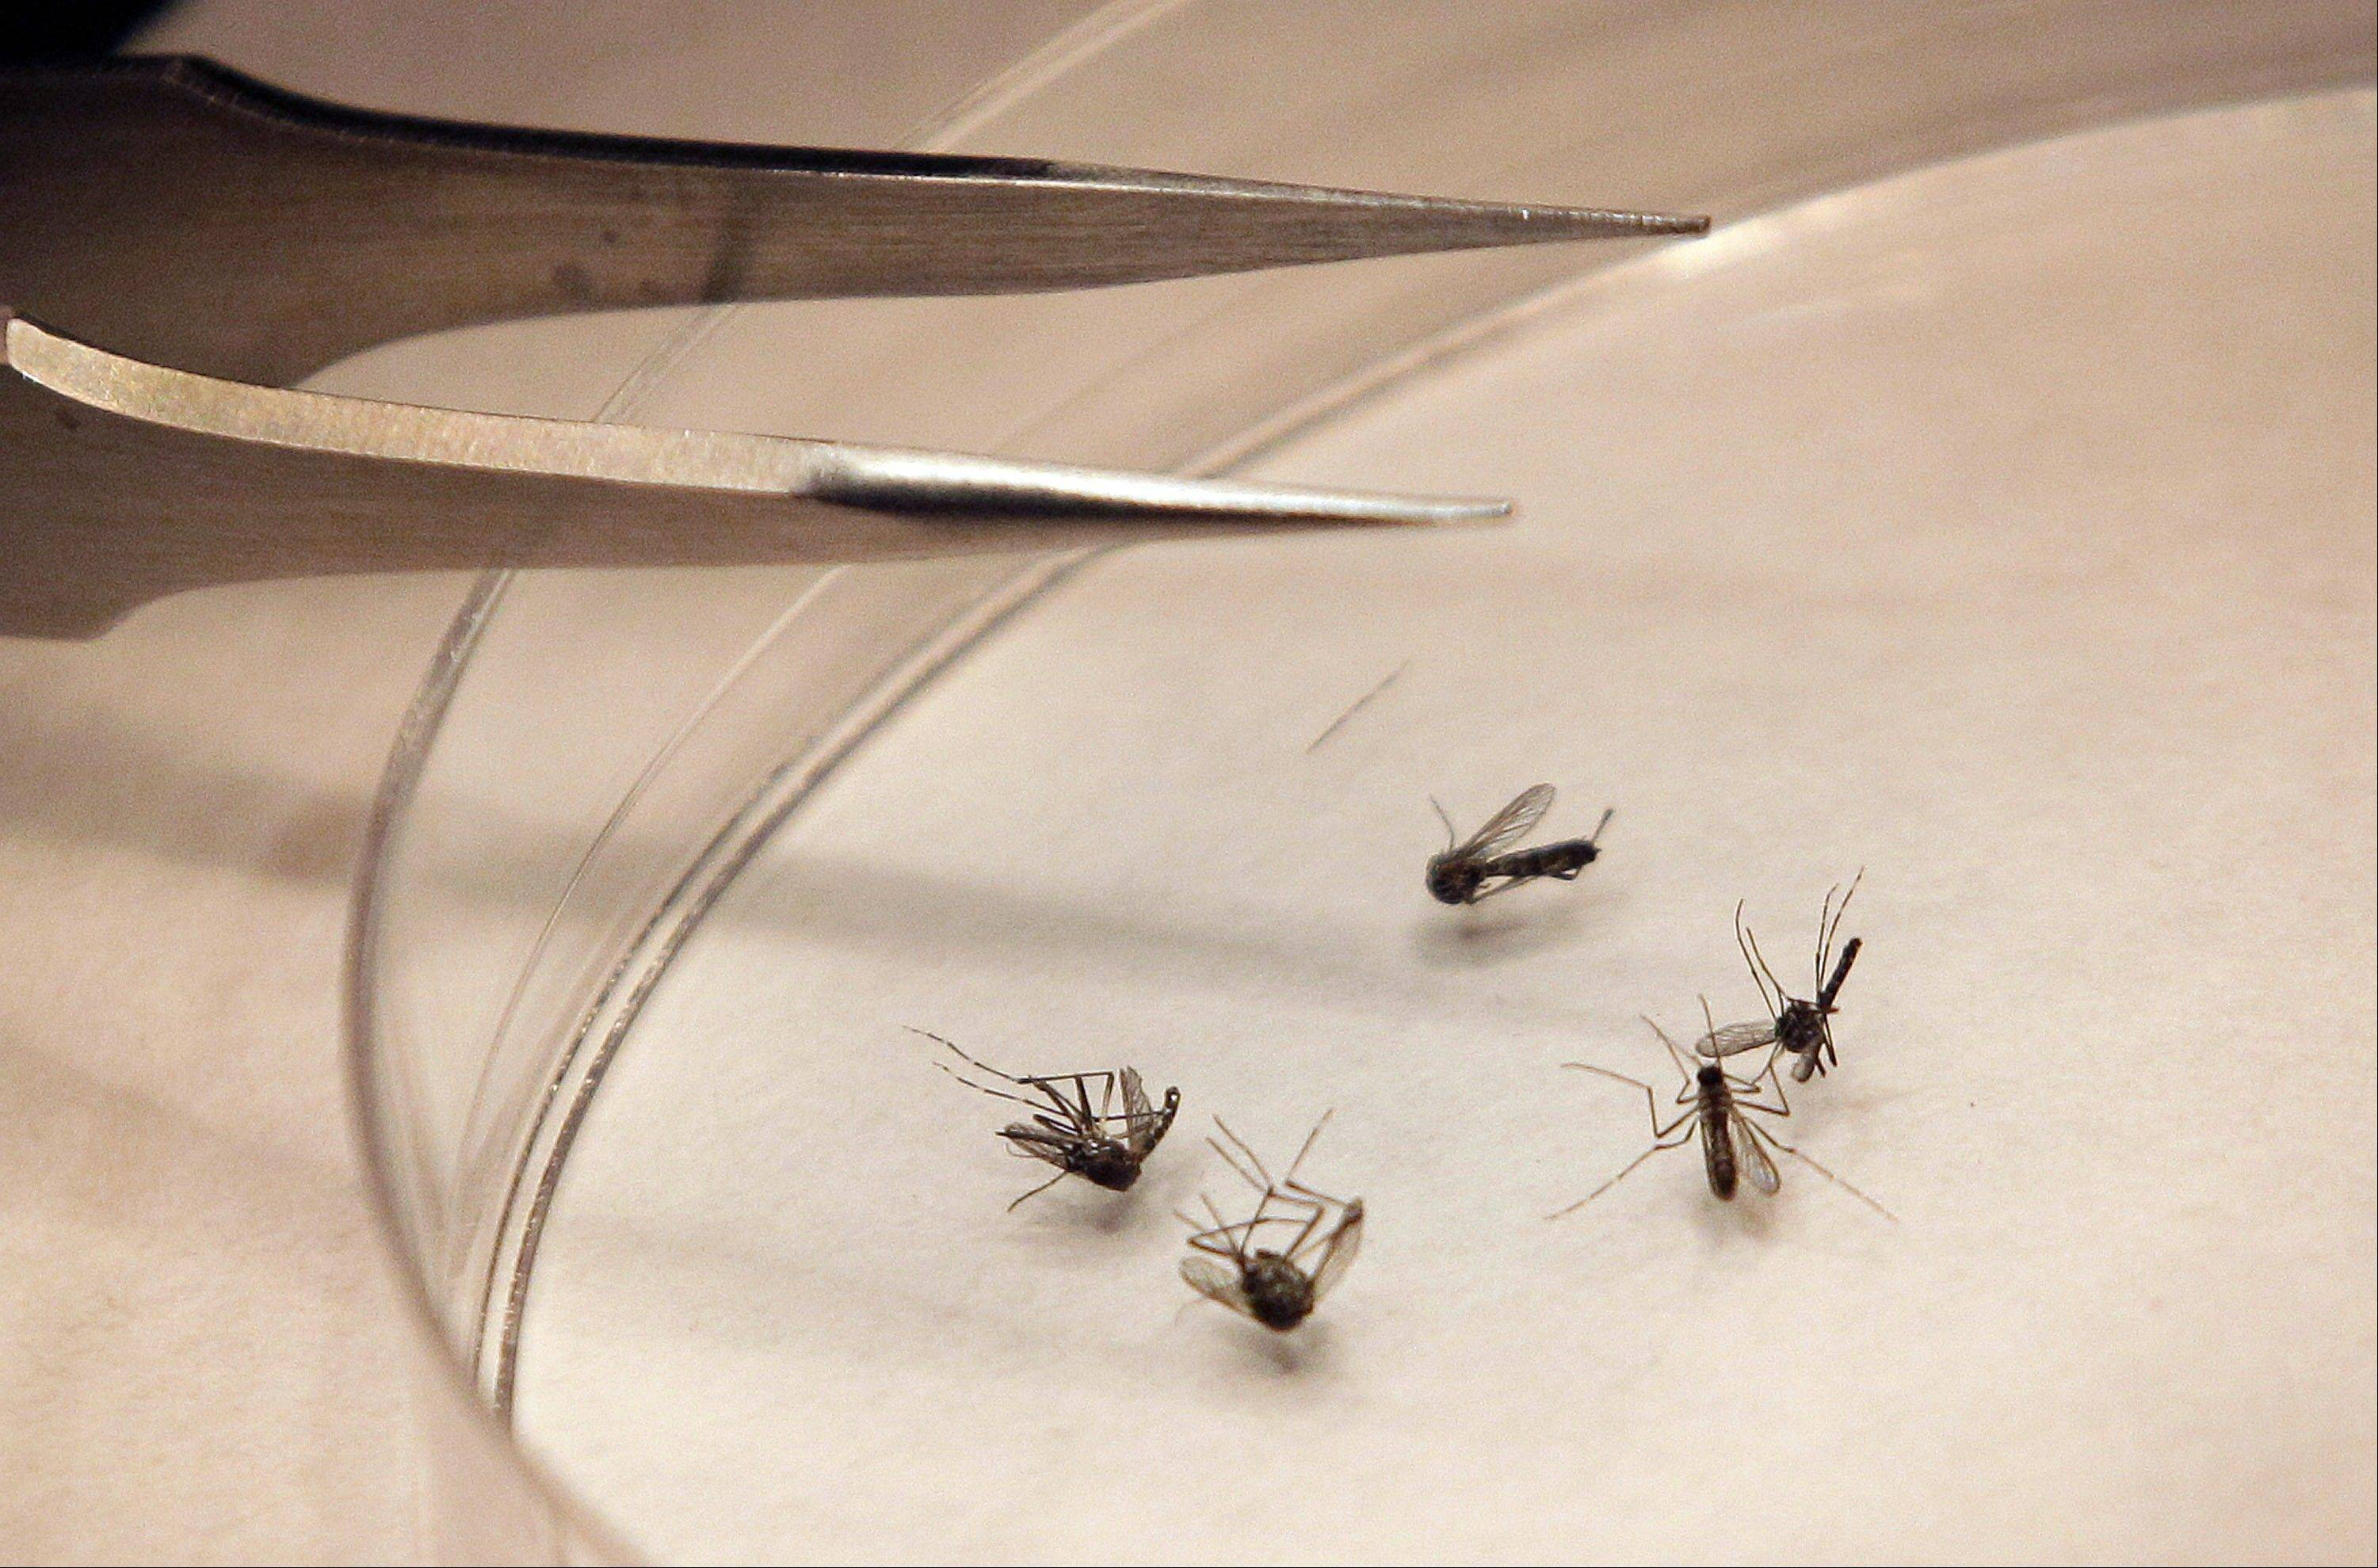 CDC: West Nile cases rise 40 percent in 1 week